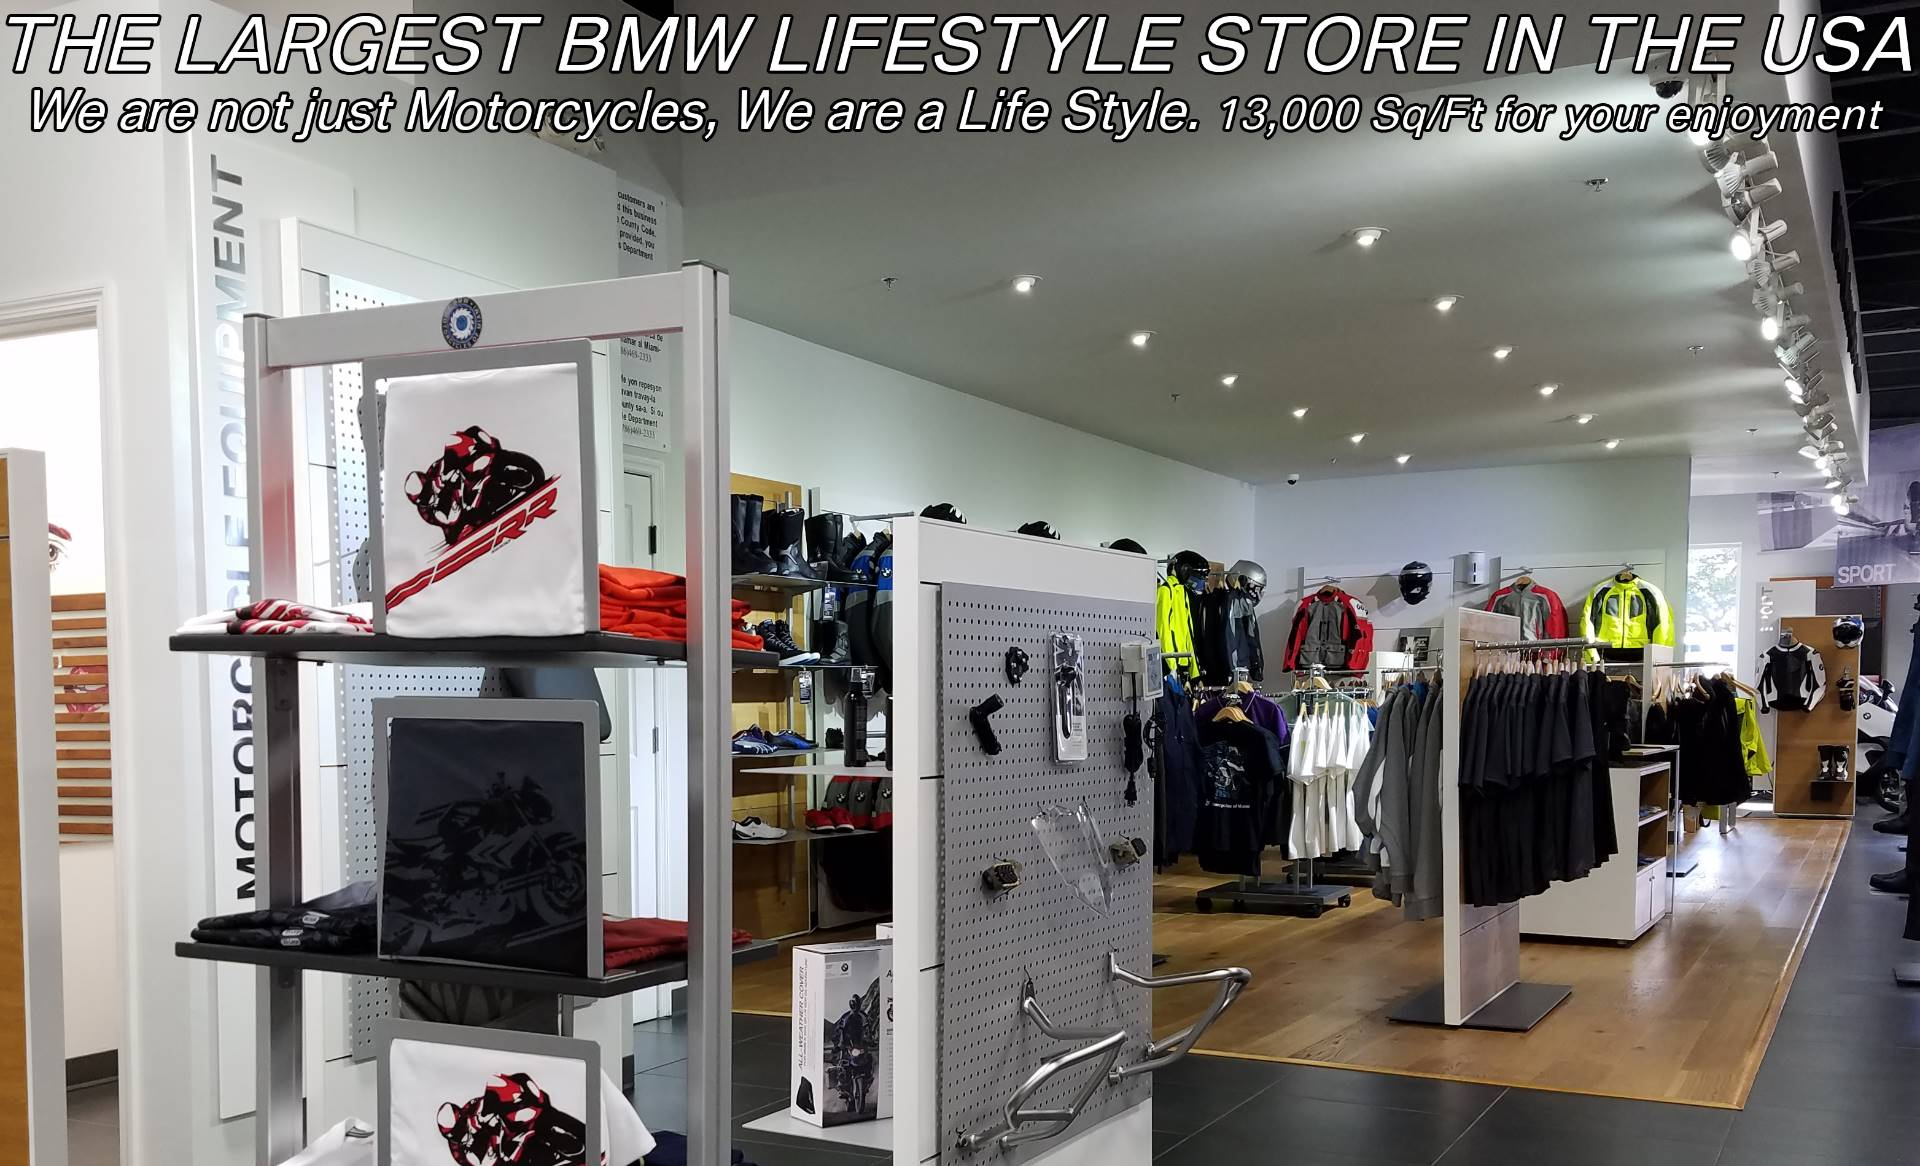 BMW Motorcycles of Miami, Motorcycles of Miami, Motorcycles Miami, New Motorcycles, Used Motorcycles, pre-owned. #BMWMotorcyclesOfMiami #MotorcyclesOfMiami